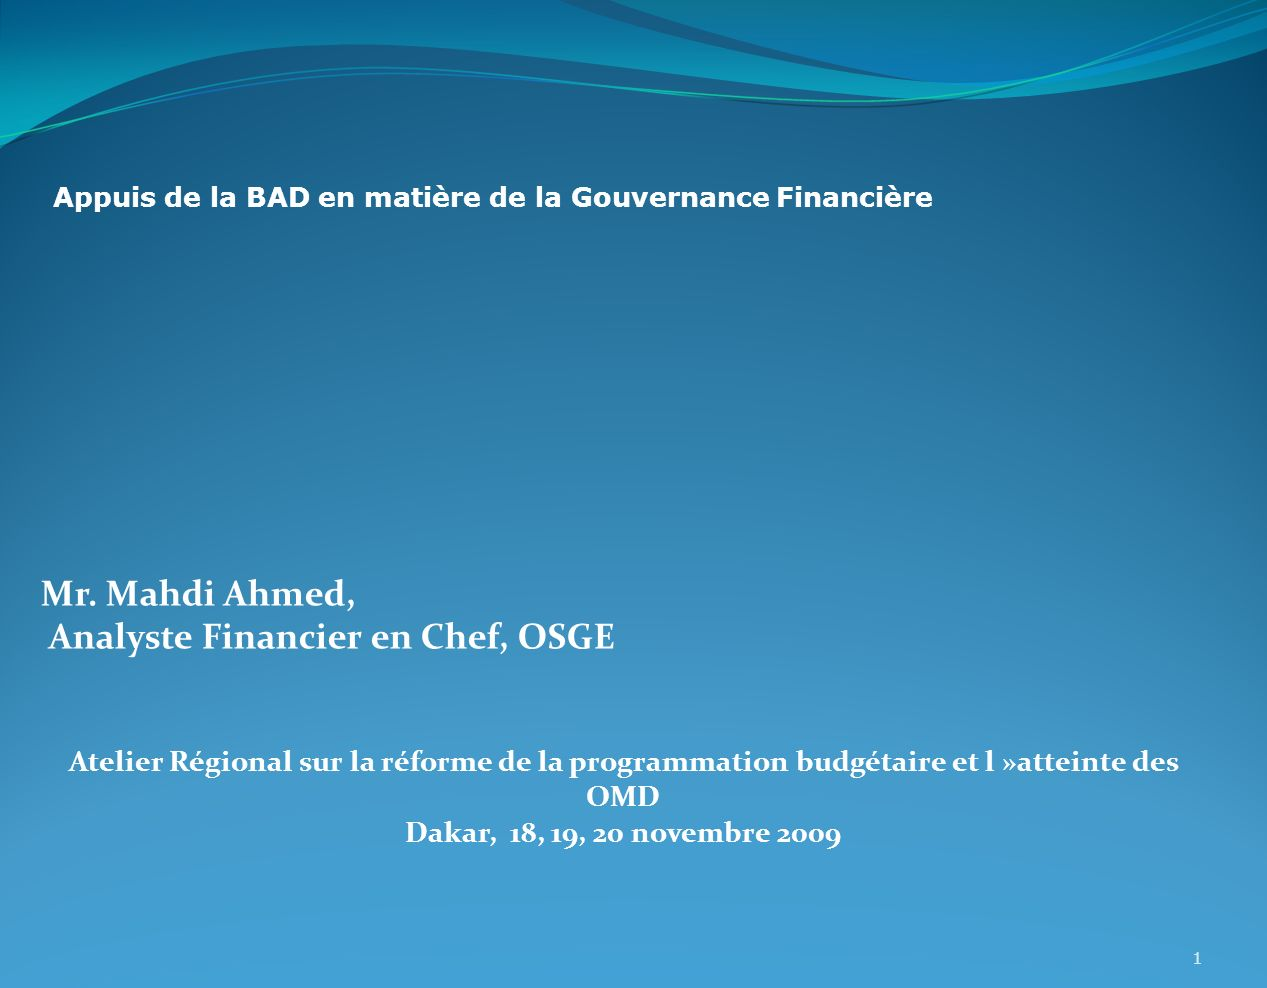 Analyste Financier en Chef, OSGE